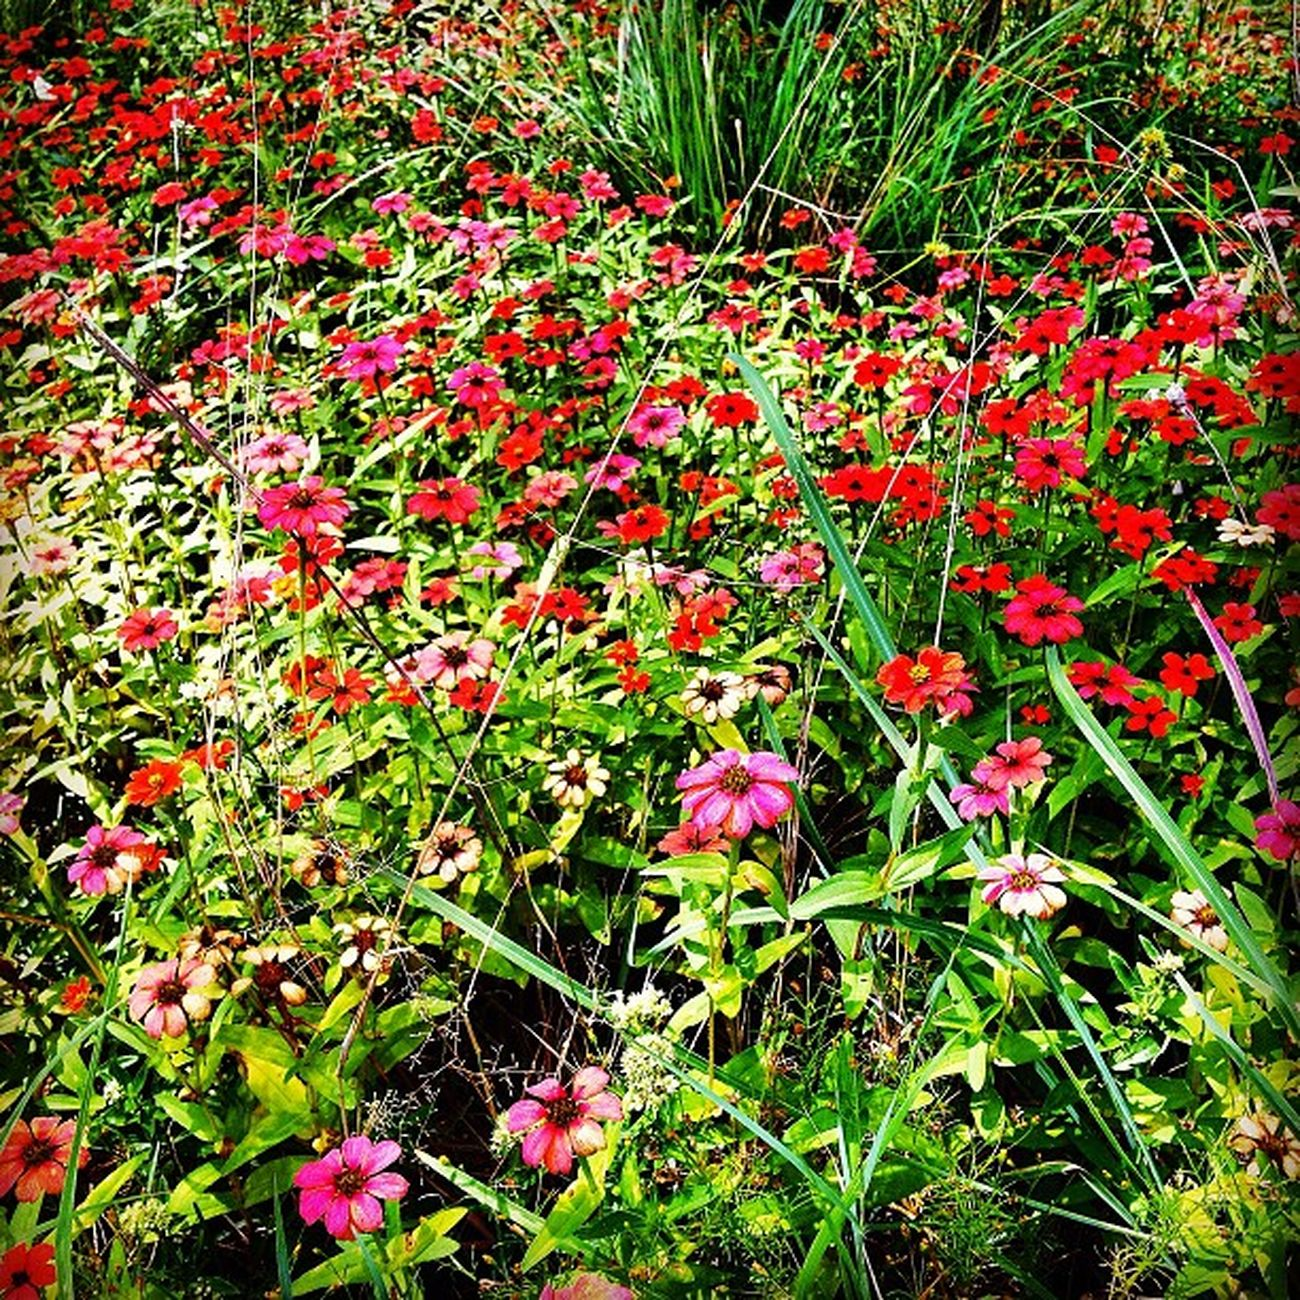 Lost in Ruby Fields Bestinstagramart Dhexpose Flowers Instamasters Flower Ace_ Flowerpower Ig_outkast Gang_family Ig_one Instauno Edit2gether Igsg Stunning_pics7 Flowerstyles_gf Icatching Flowerstagram Weareinheaven Flowermagic Flowerfields Flowerslovers Bd Master_pics Ig_captures Ig_artgallery